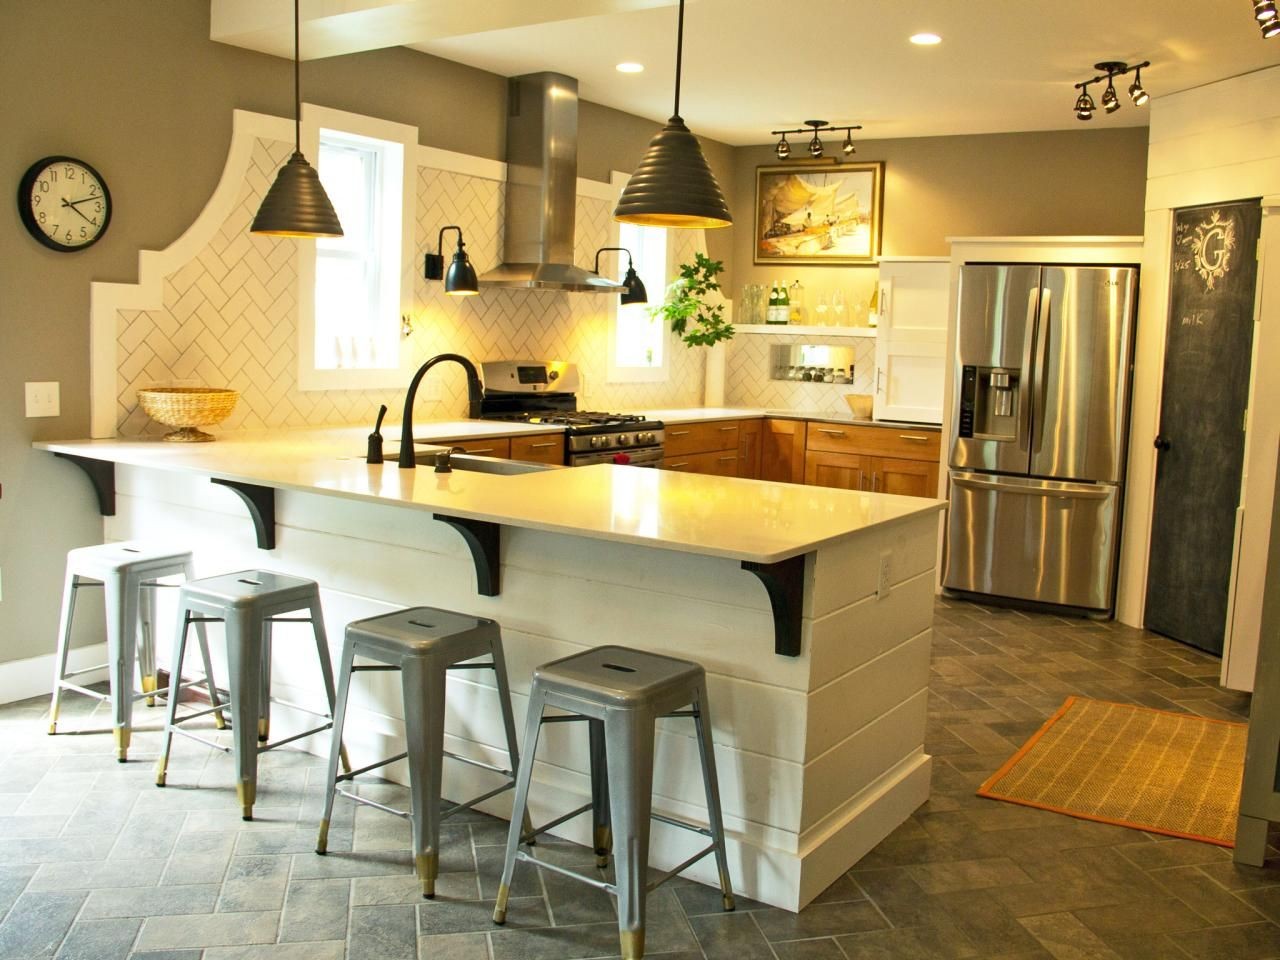 Best Kitchen Gallery: 15 Design Ideas For Kitchens Without Upper Cabi S Larder of Farmhouse Kitchens Without Upper Cabinets on rachelxblog.com